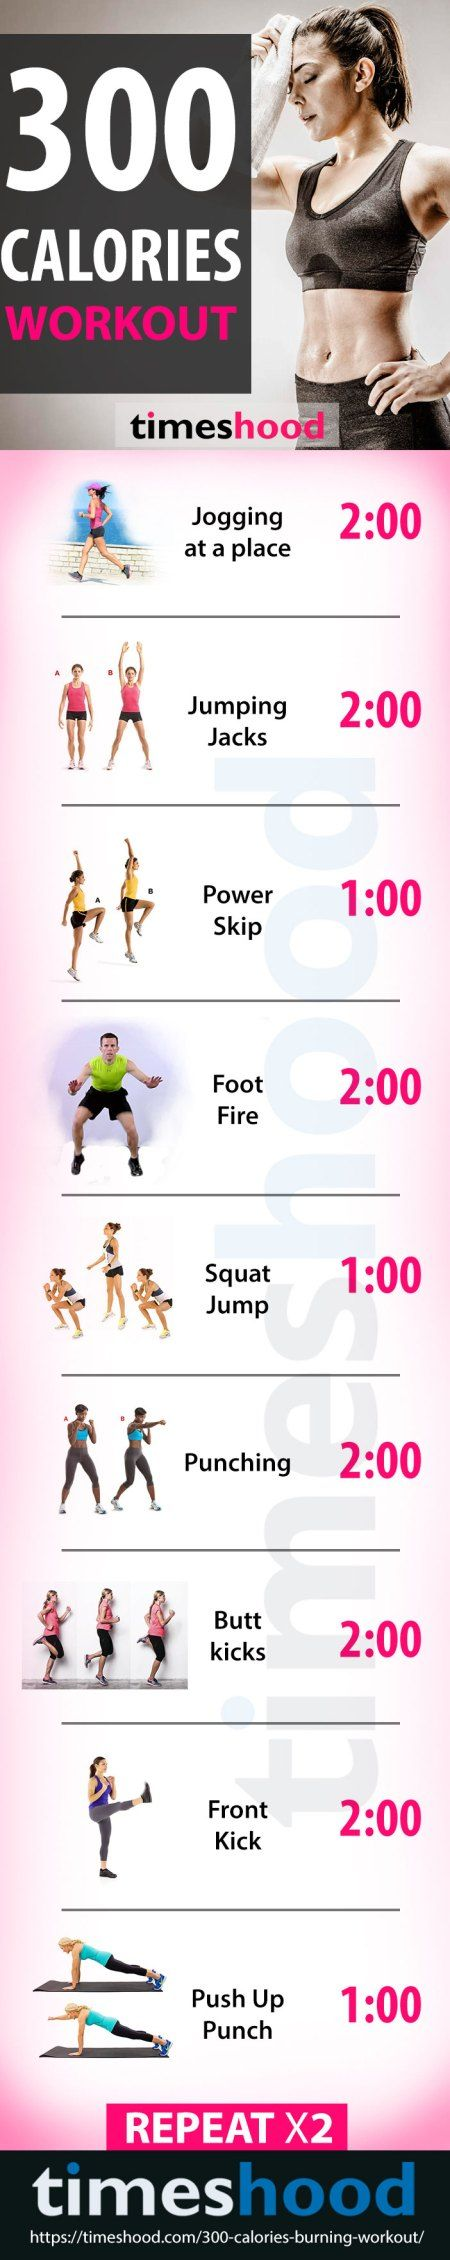 30 Minute, 300 Calories Burning Workout At Home | Calorie ...